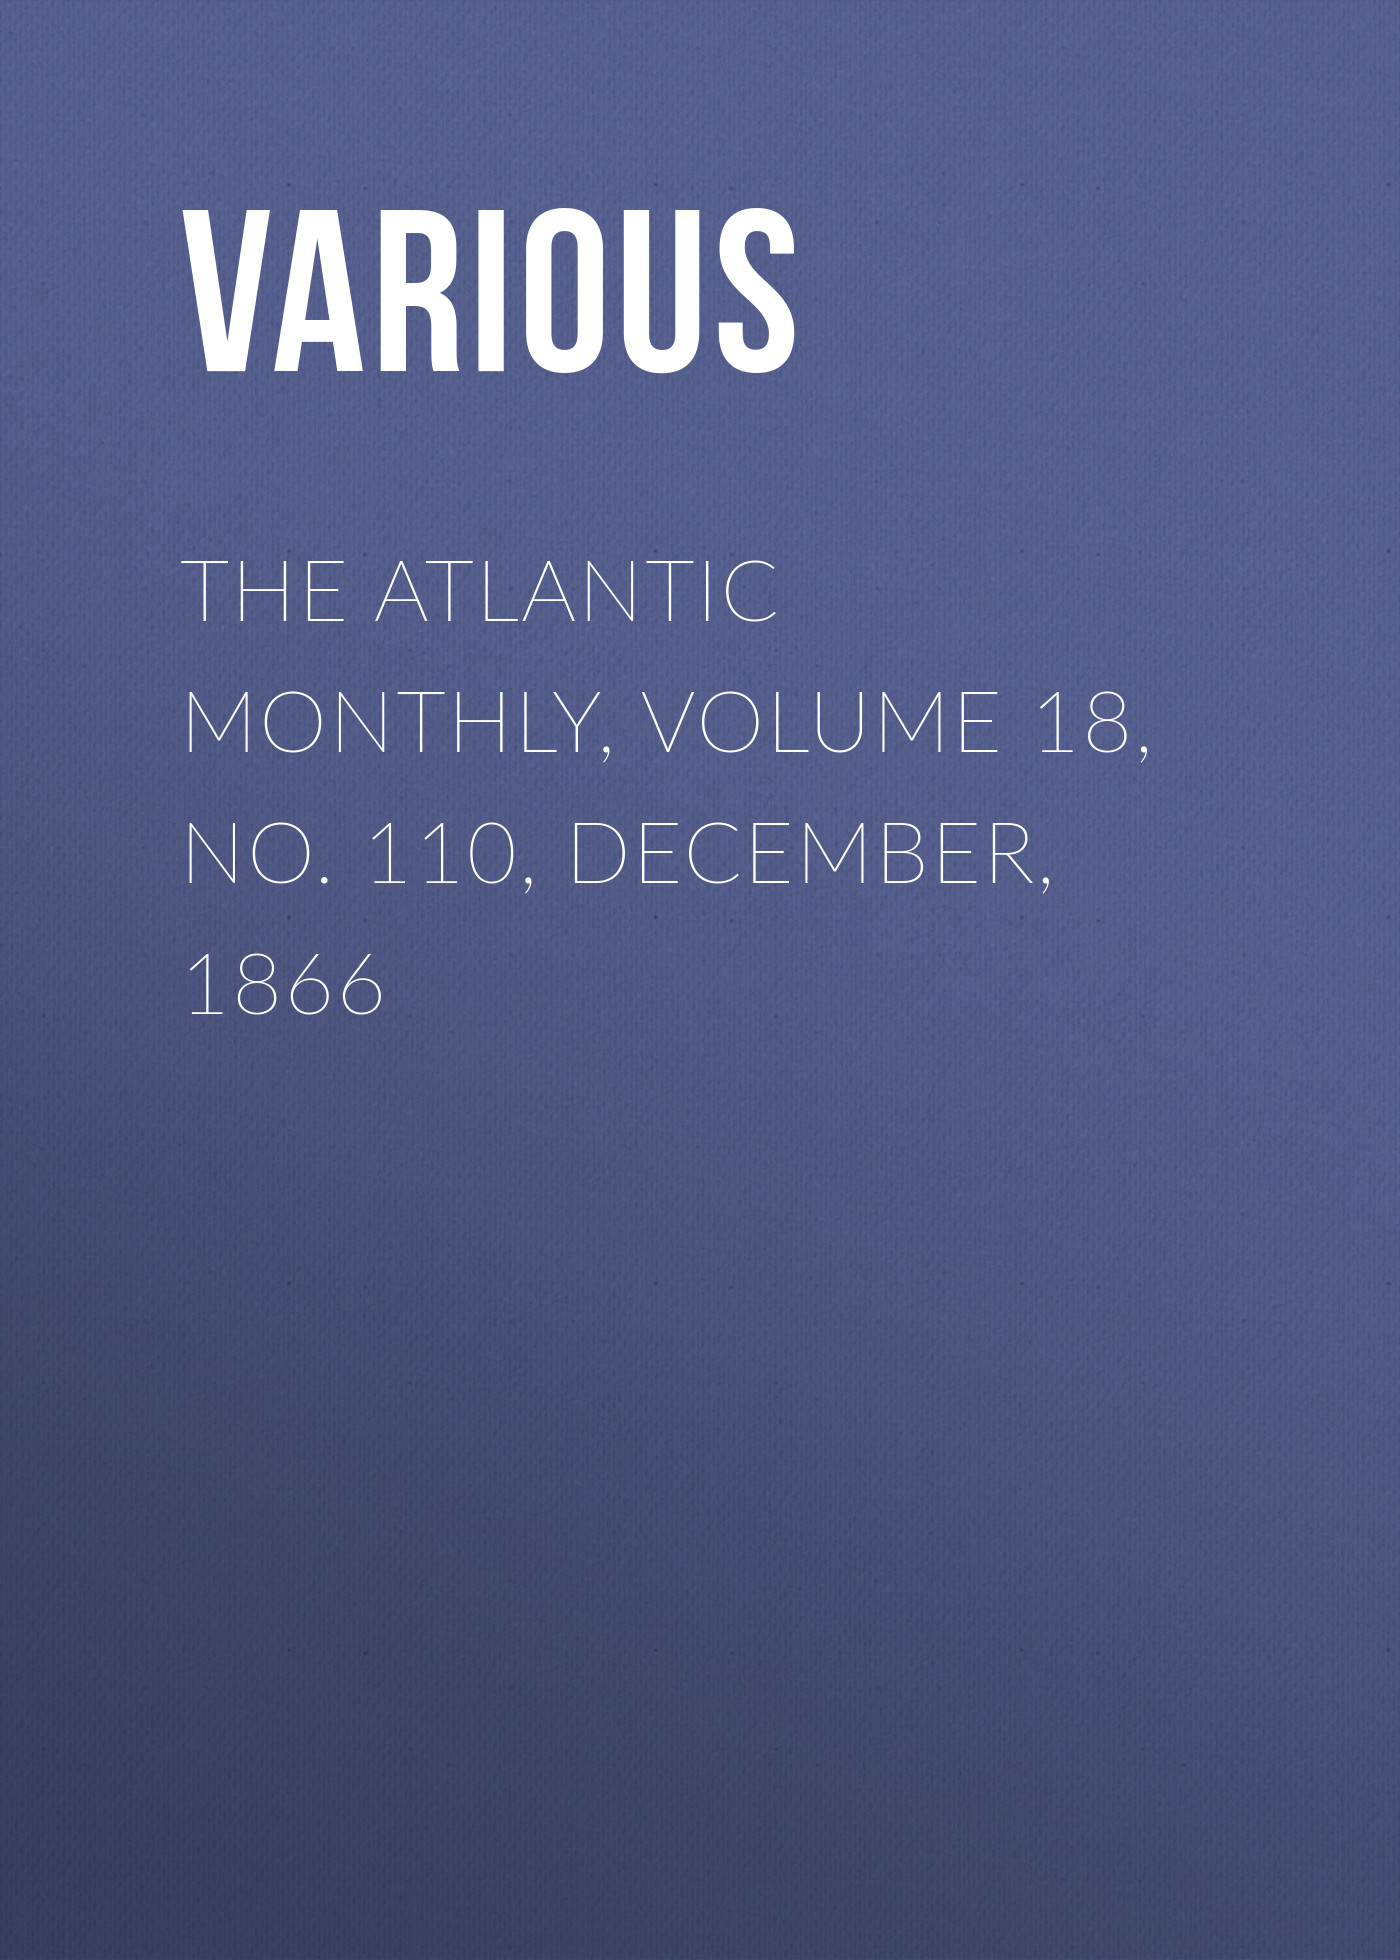 Various The Atlantic Monthly, Volume 18, No. 110, December, 1866 various the atlantic monthly volume 10 no 62 december 1862